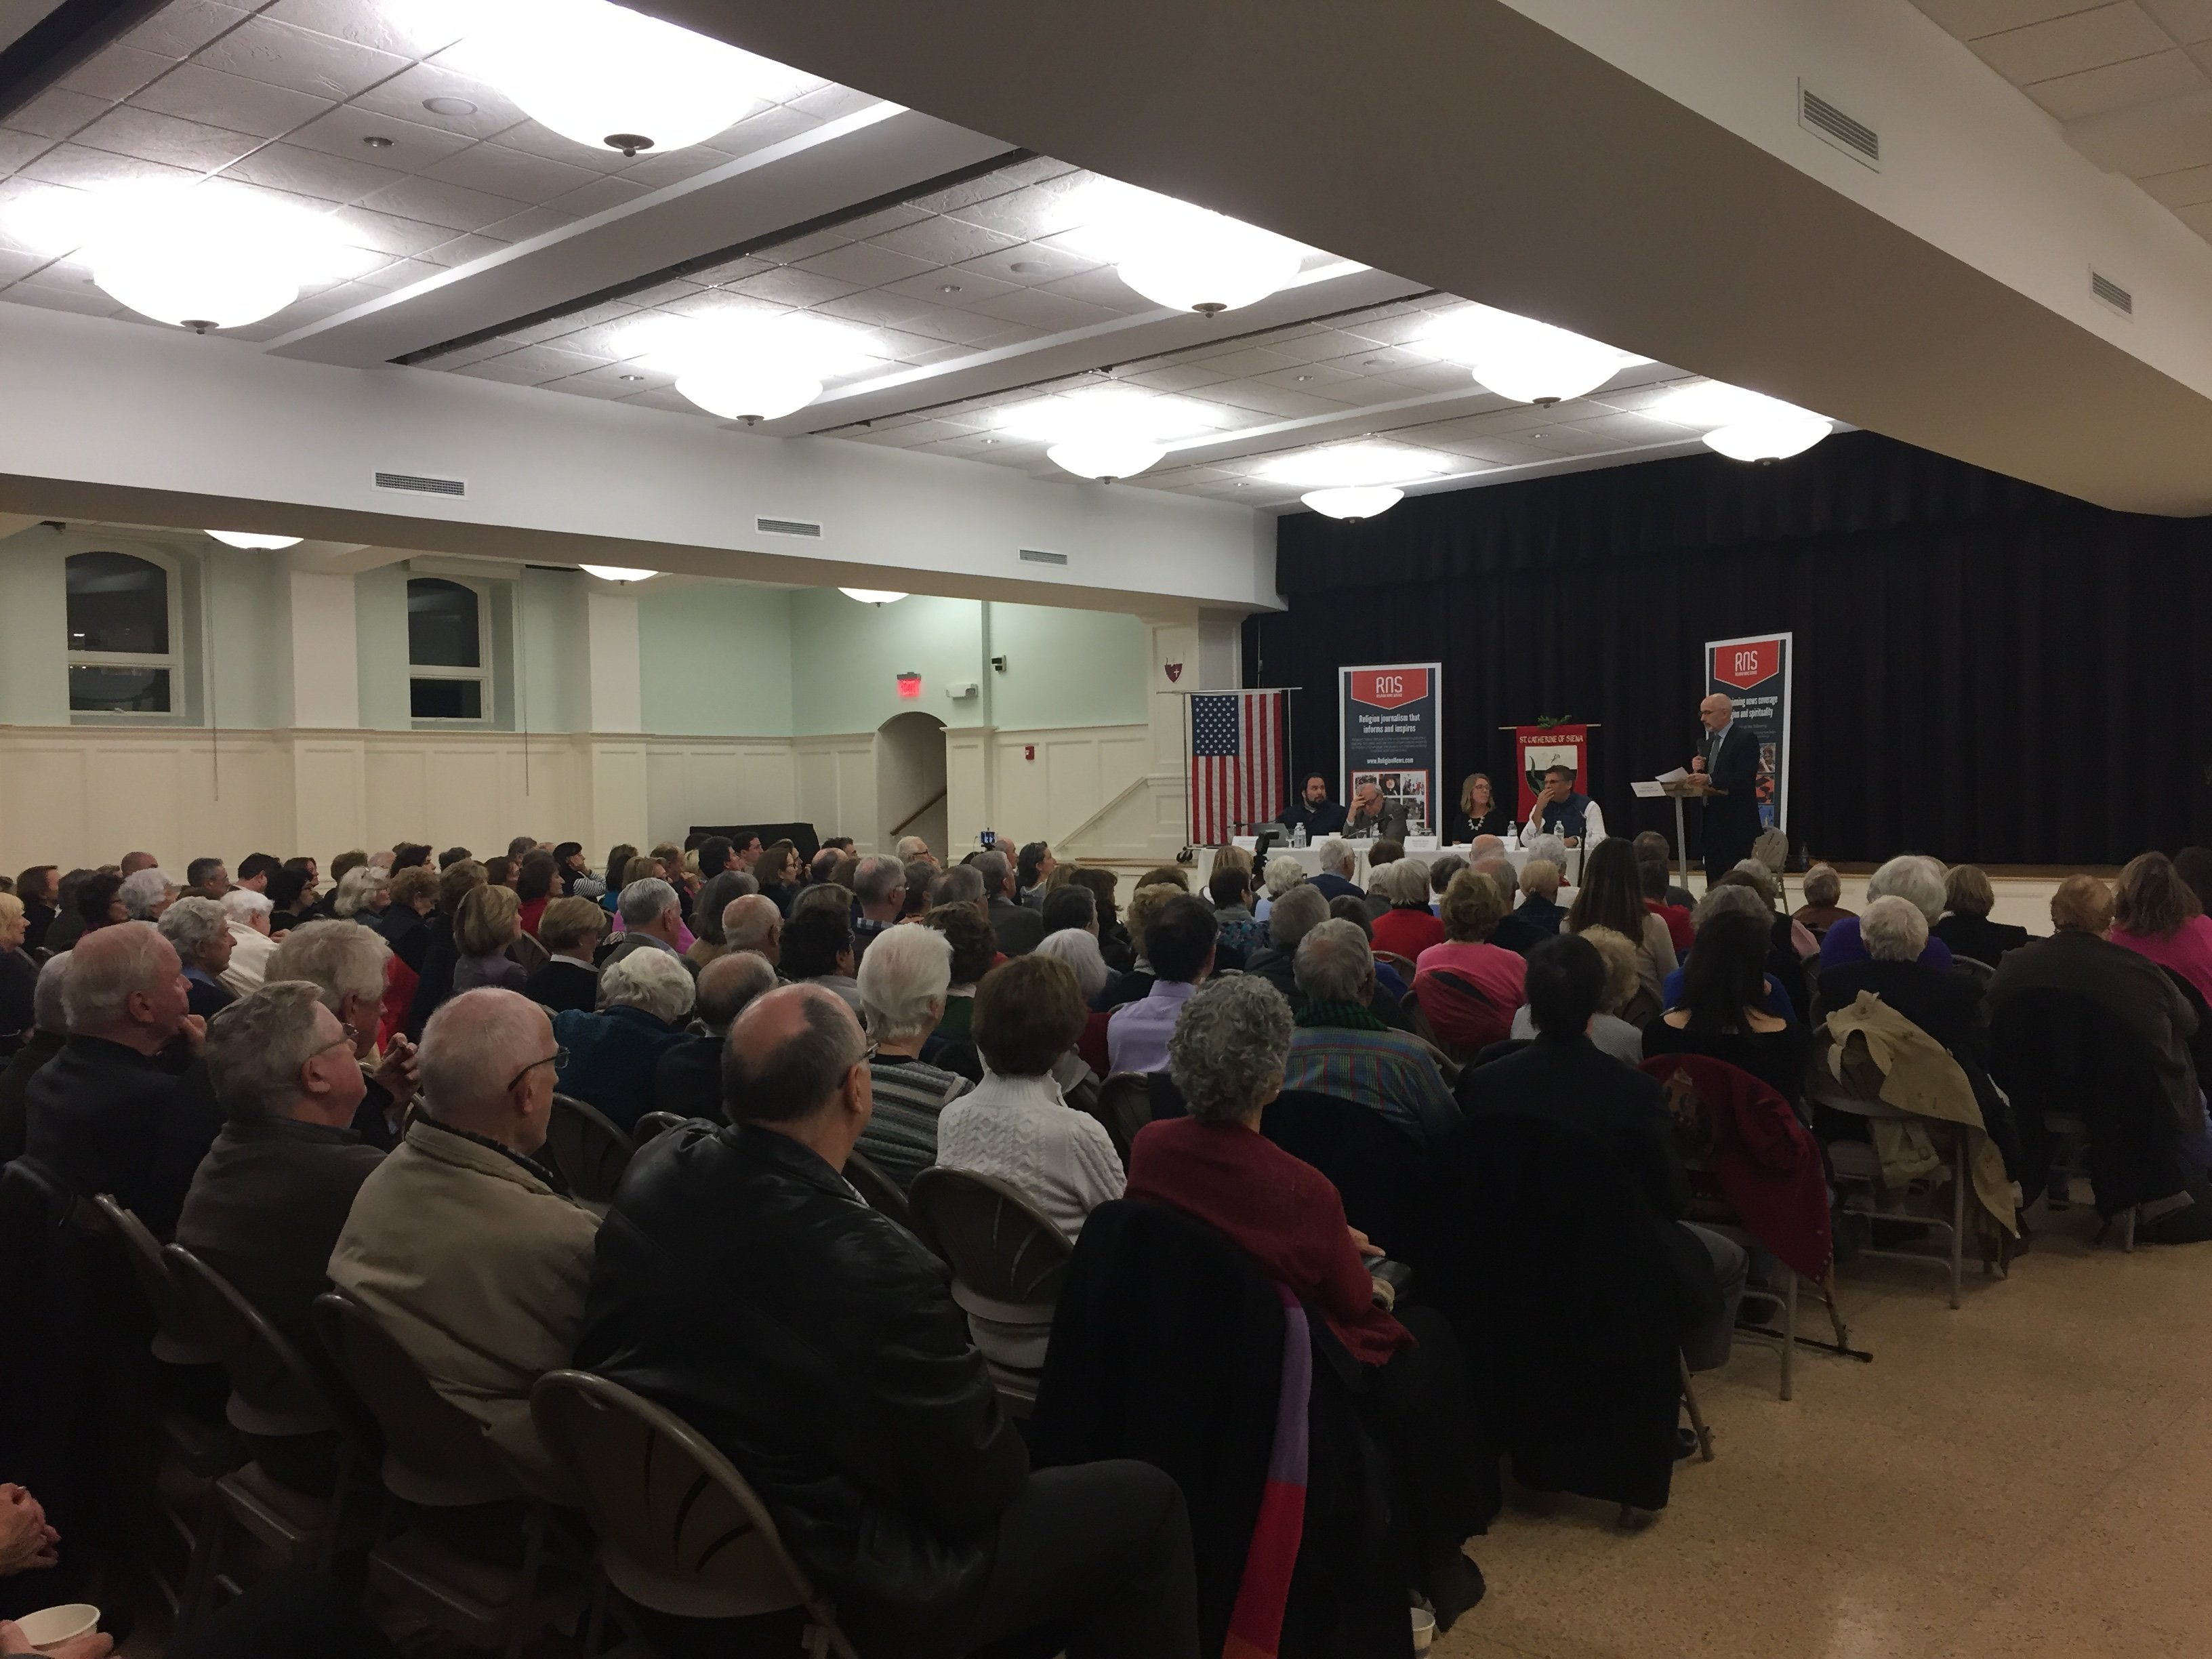 """Over 200 people attended an expert panel discussion titled, """"Election Aftermath: Faith & the Common Good,"""" co-sponsored by Religion News Service and St. Catherine of Siena Parish, Riverside, Conn."""